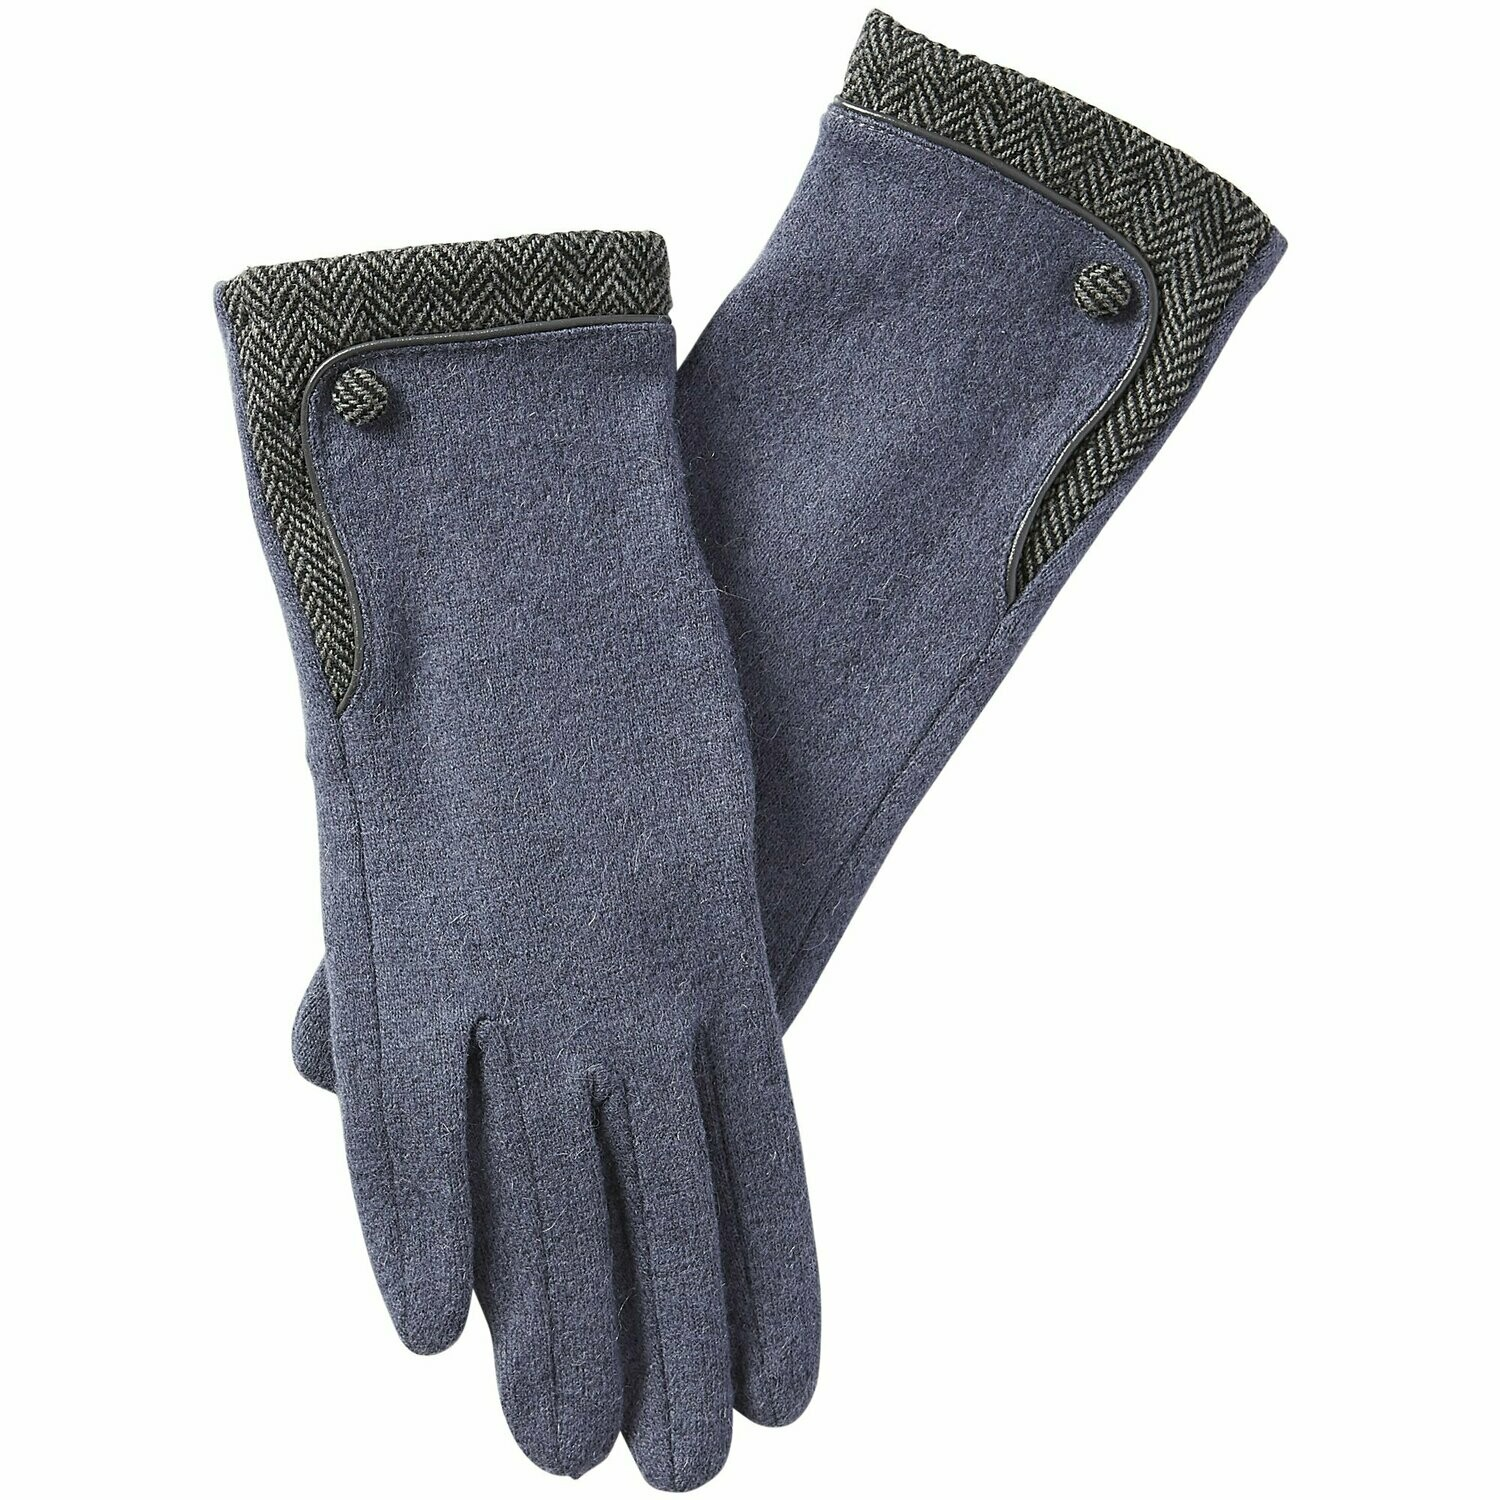 BUTTON GLOVE